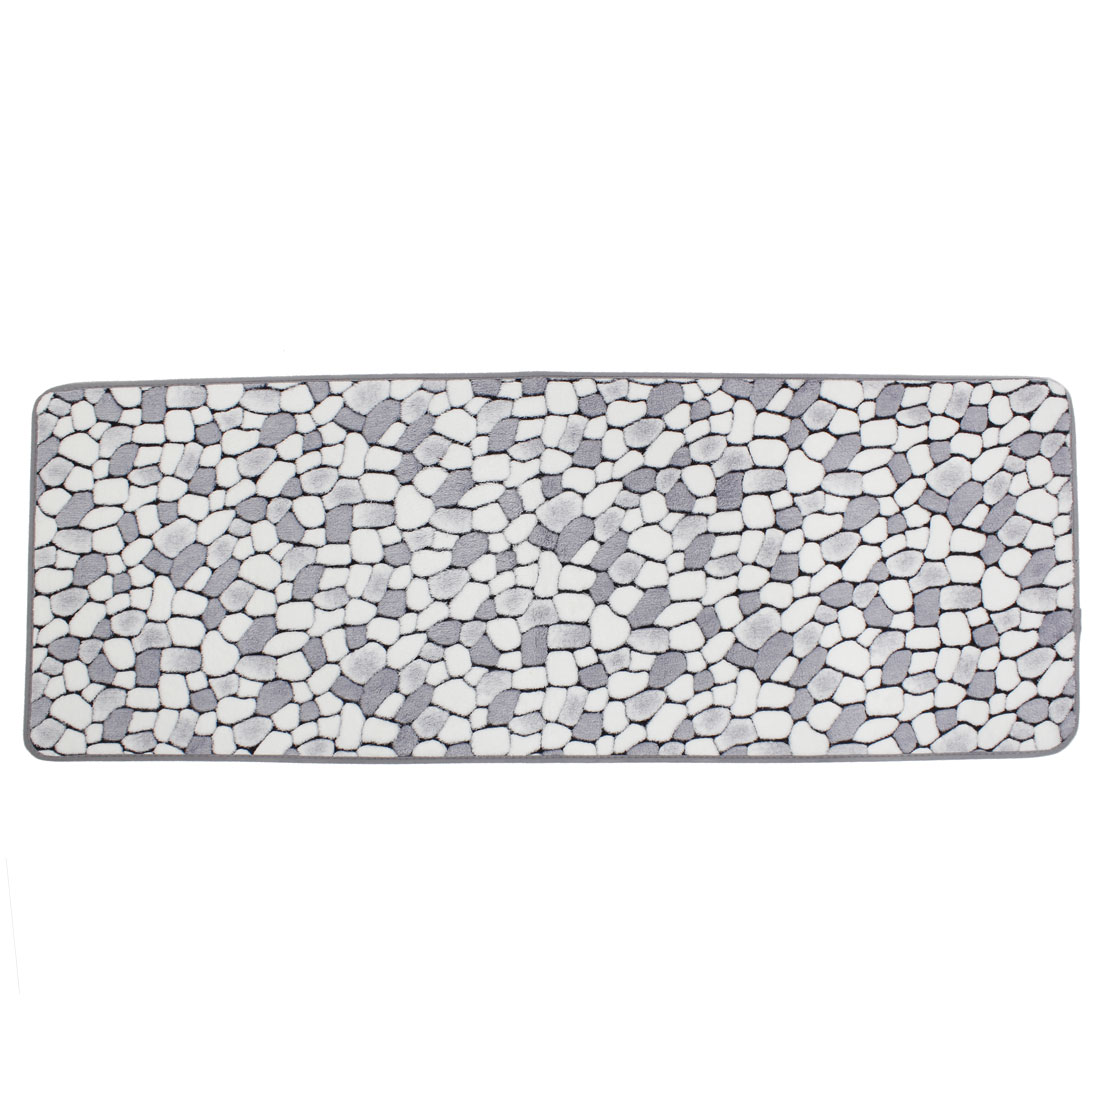 Ustide 2 Piece Grey Stone Rug Bathroom Rug Set Coral Fleece Memory Foam Mat  Non Slip Floor Runner Kitchen Rug Set   Walmart.com